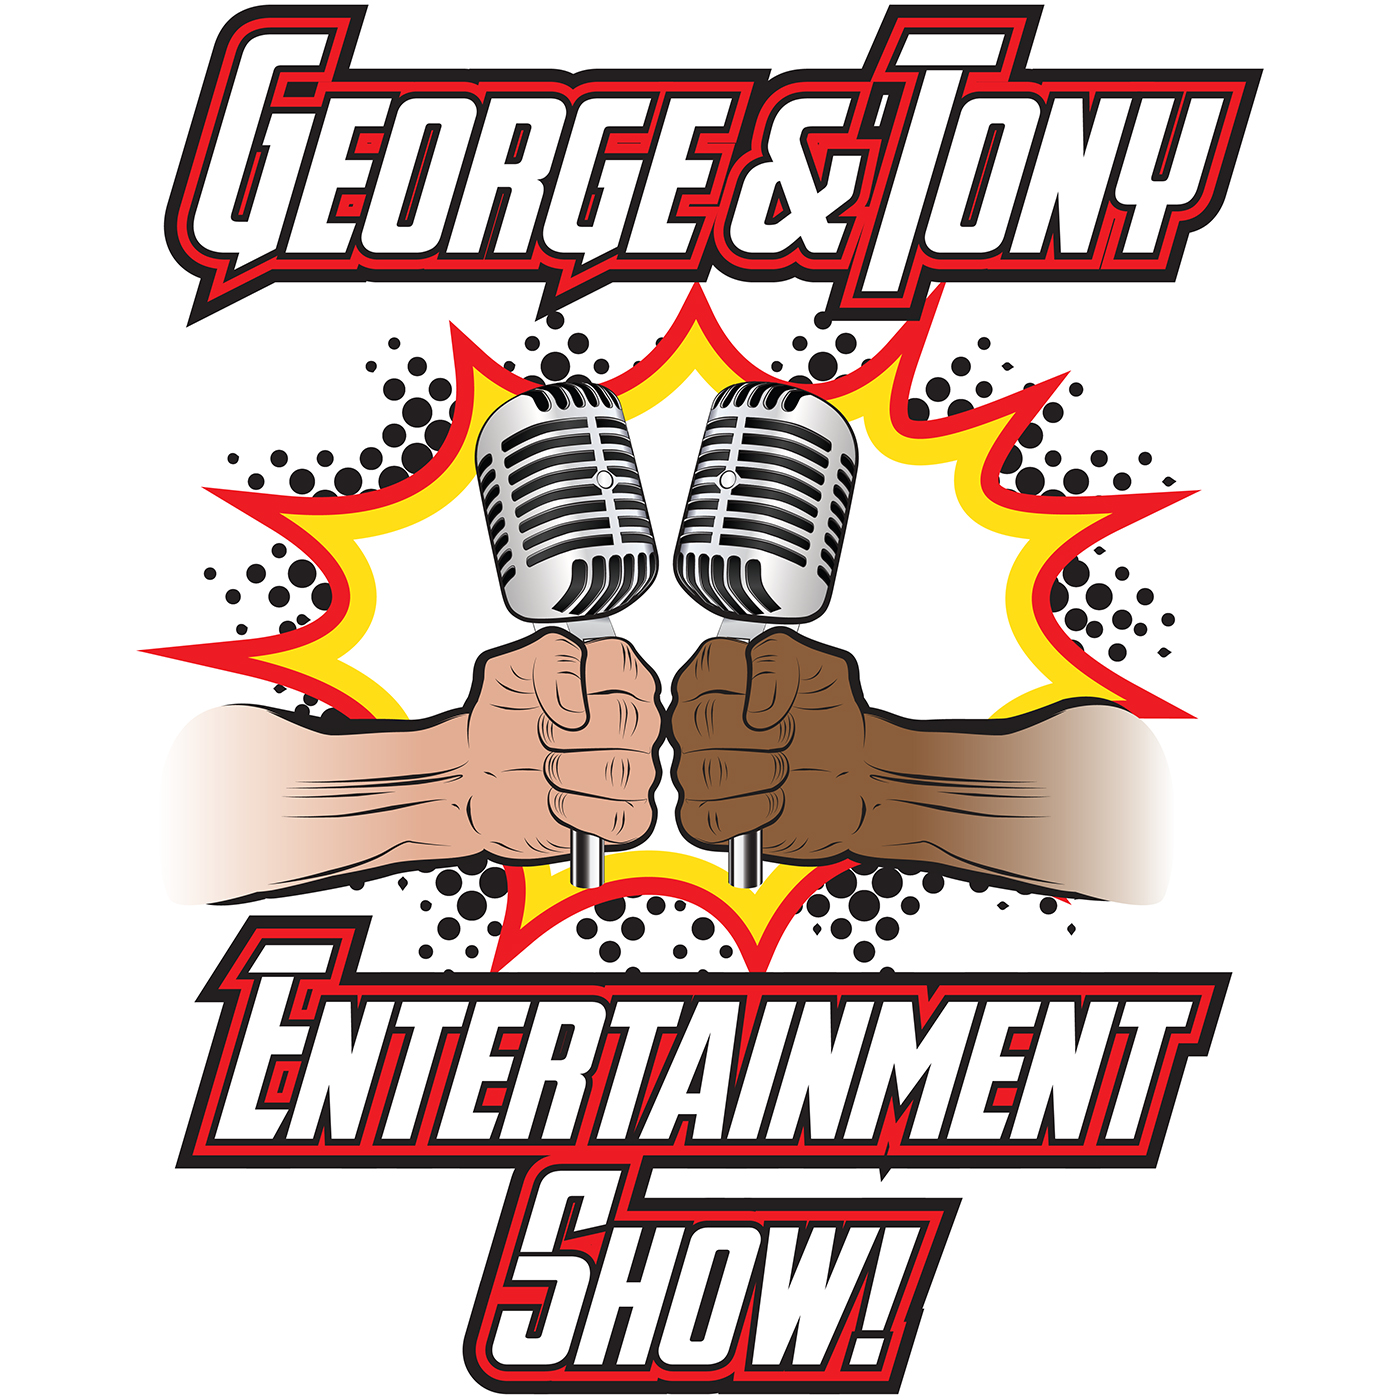 George and Tony Entertainment Show #33